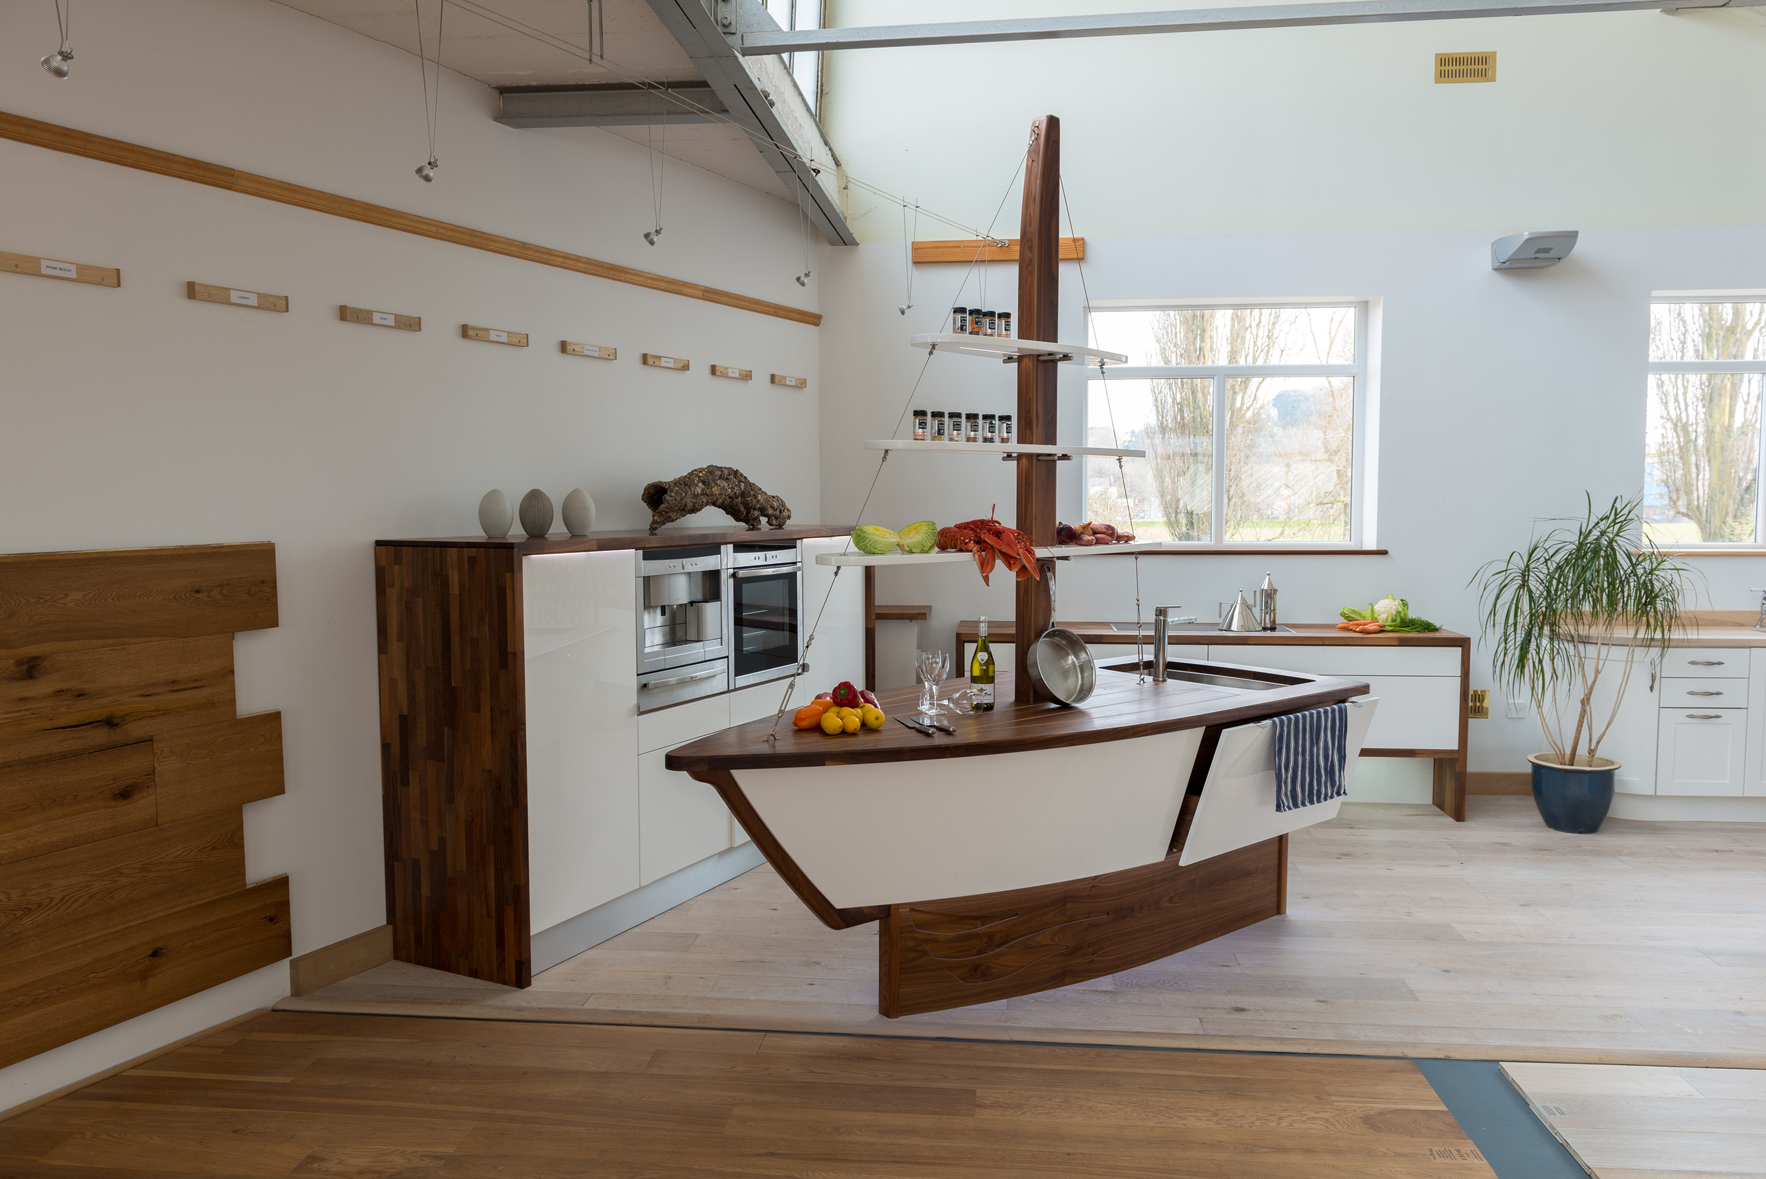 Creative kitchen displays launch a water tight partnership for Kitchen display